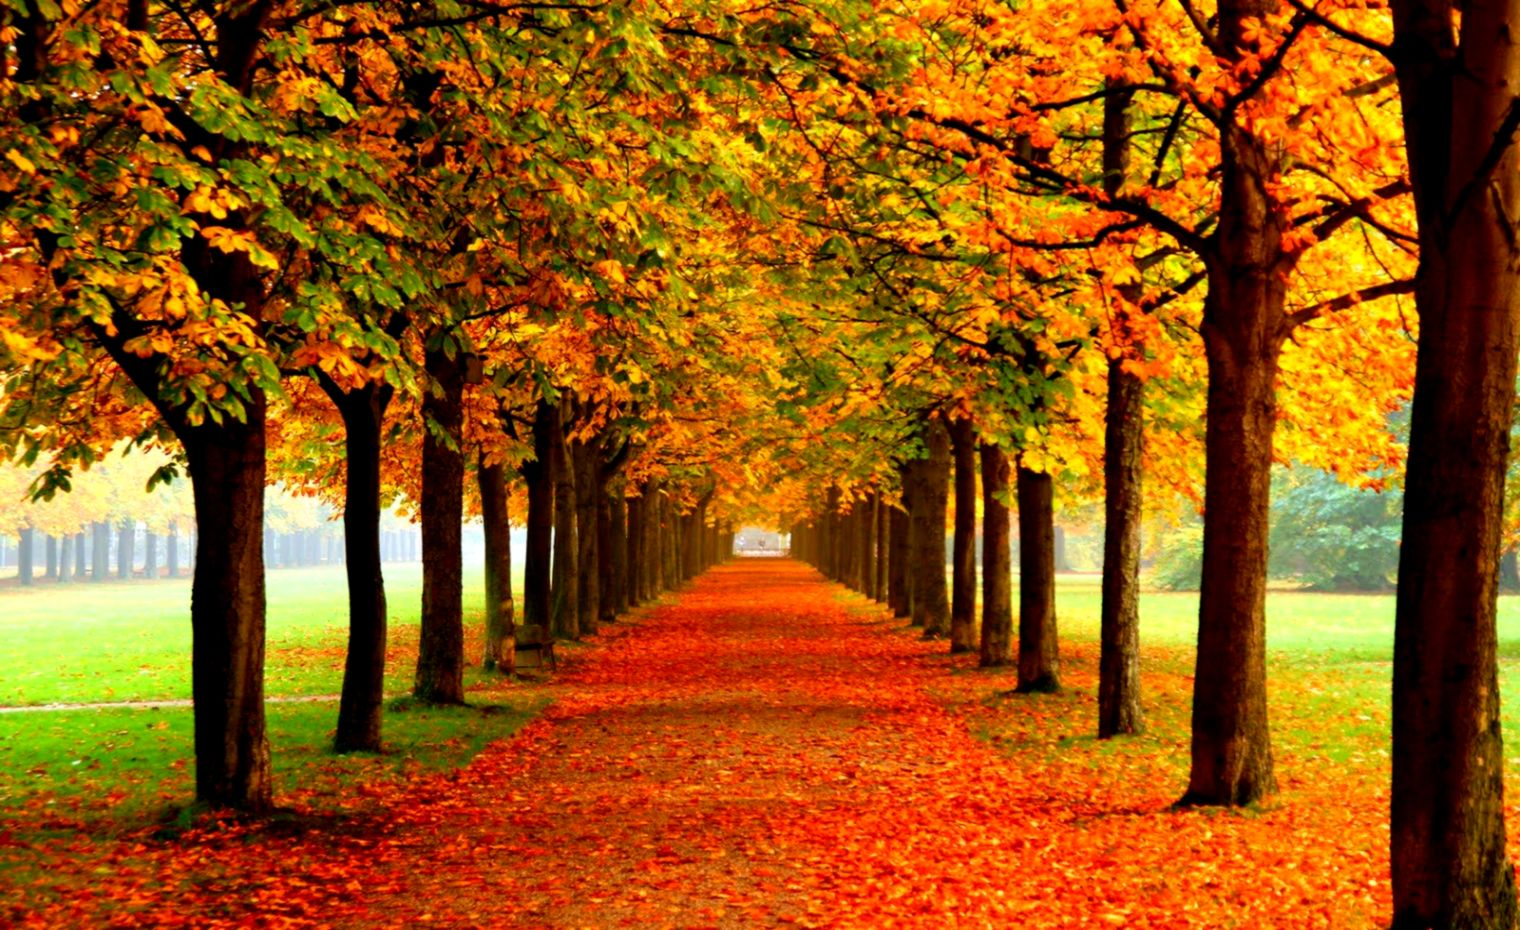 Autumn Foliage Fall Hd Wallpaper Wallpapers Image